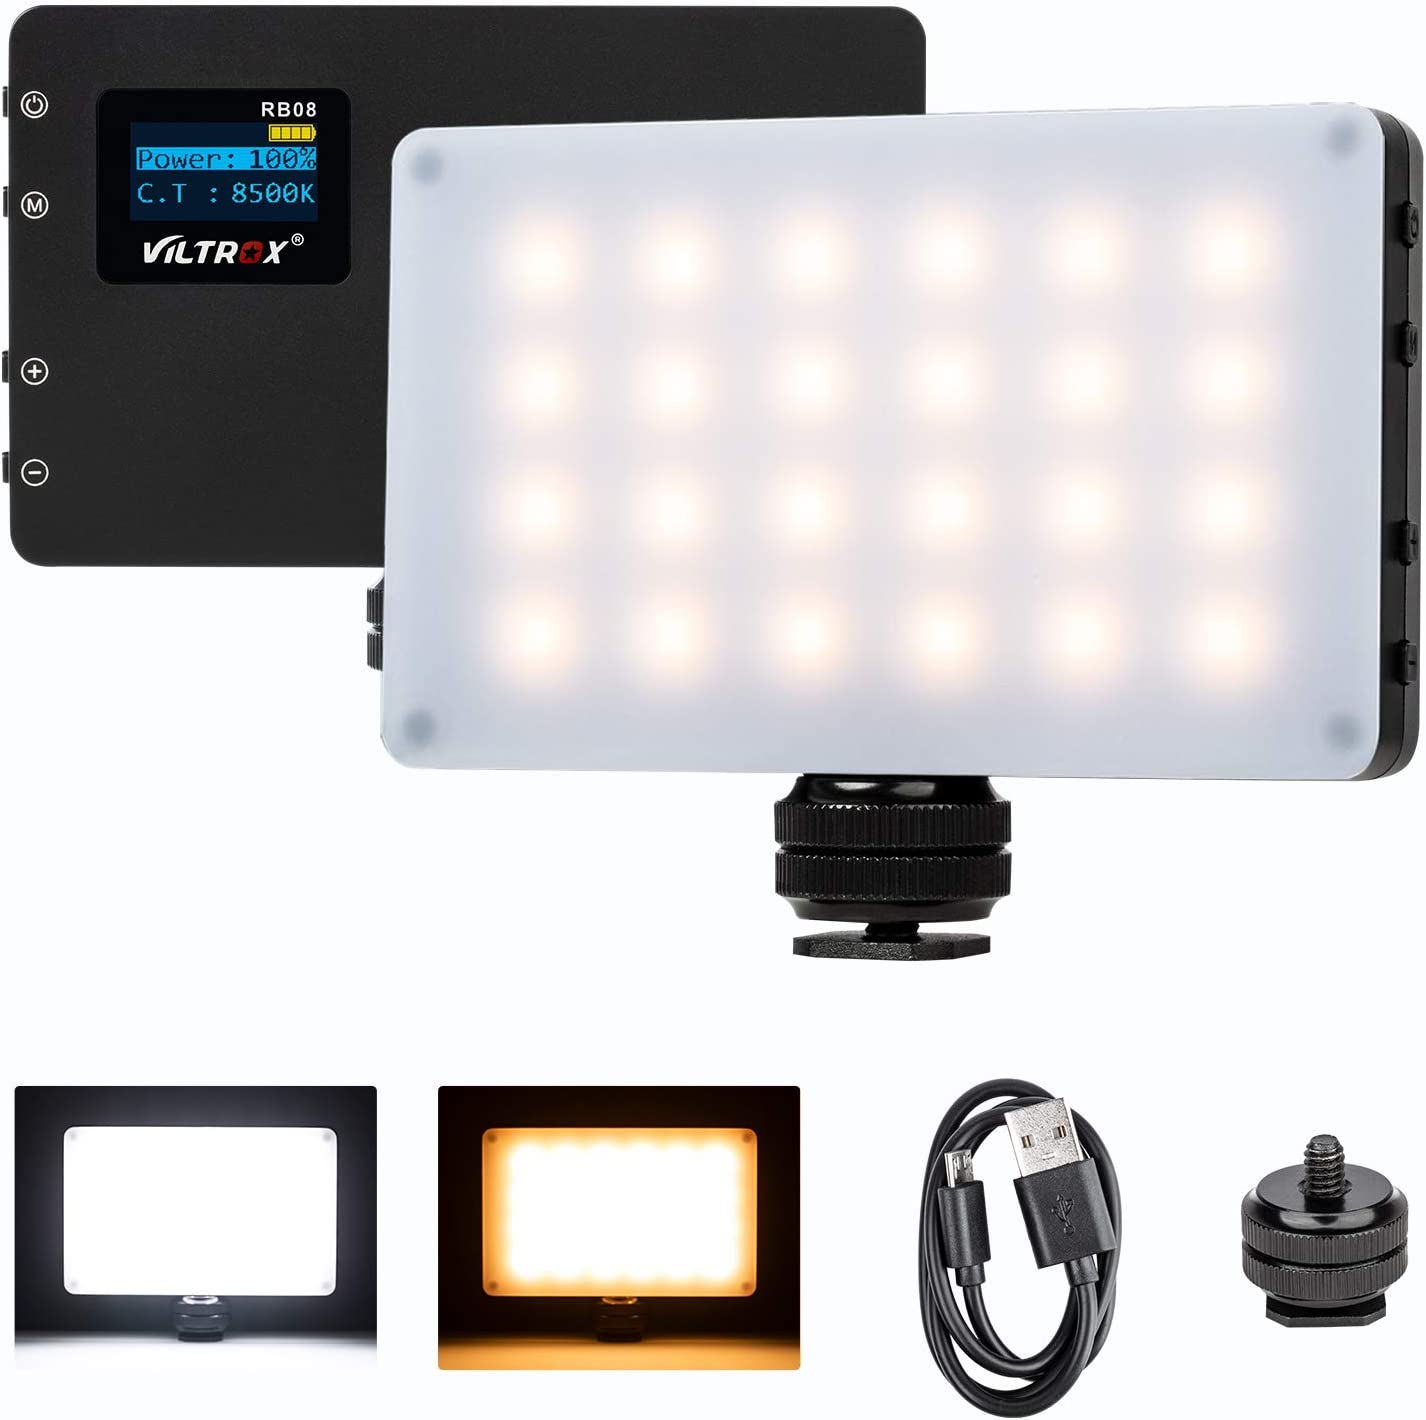 Venidice LED-198B Camera//Camcorder Light 198 Bi-Color LED Video Lighting Kit 3200K-7500K, 980LM LED Video Light with NP-F750 Battery Charger for Canon Nikon Sony and Other DSLR Cameras